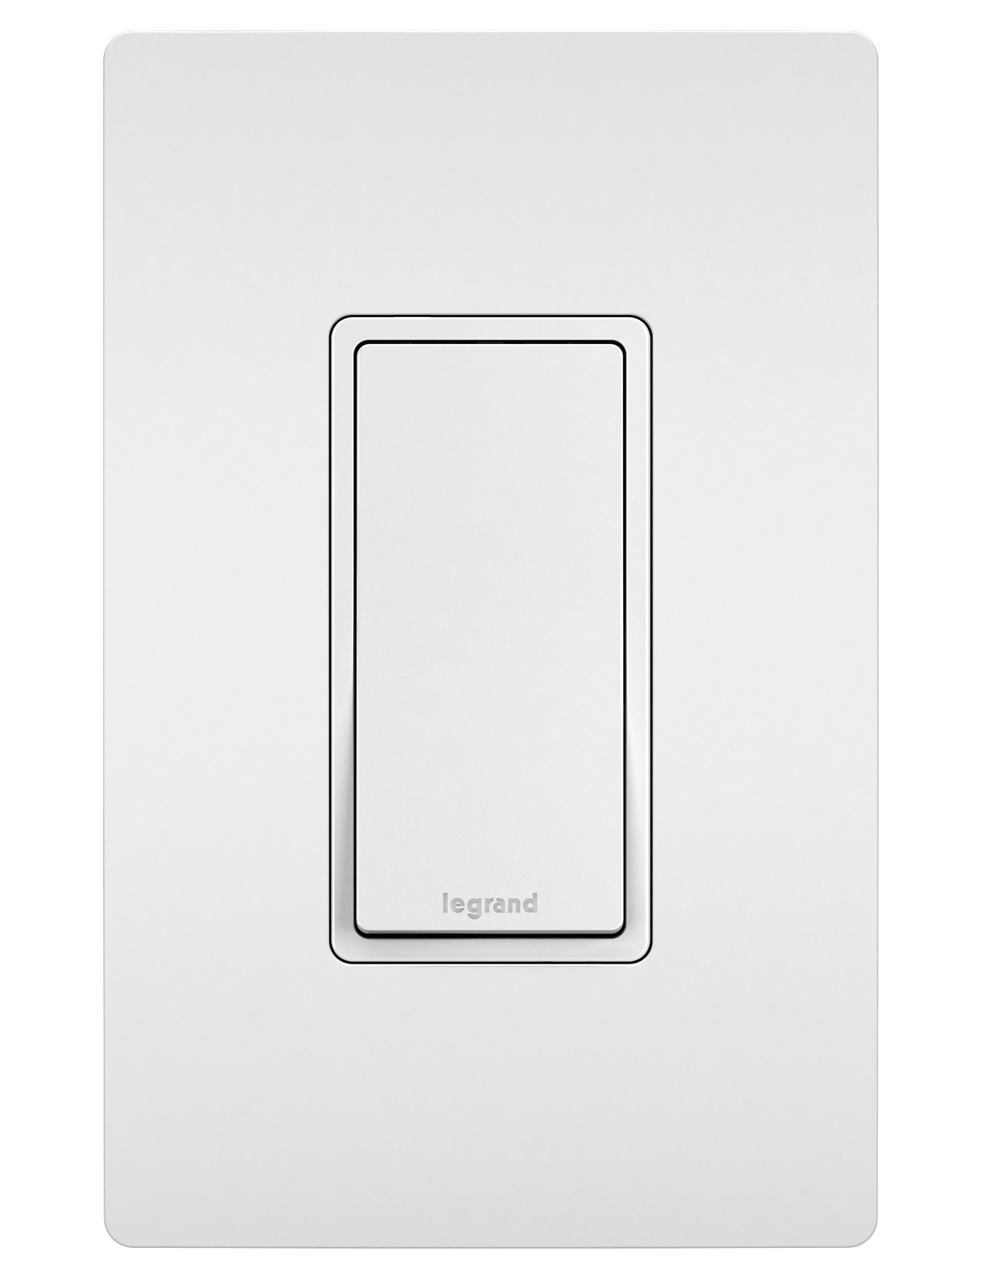 15A 3-Way Swith with Locator Light, White | Legrand on